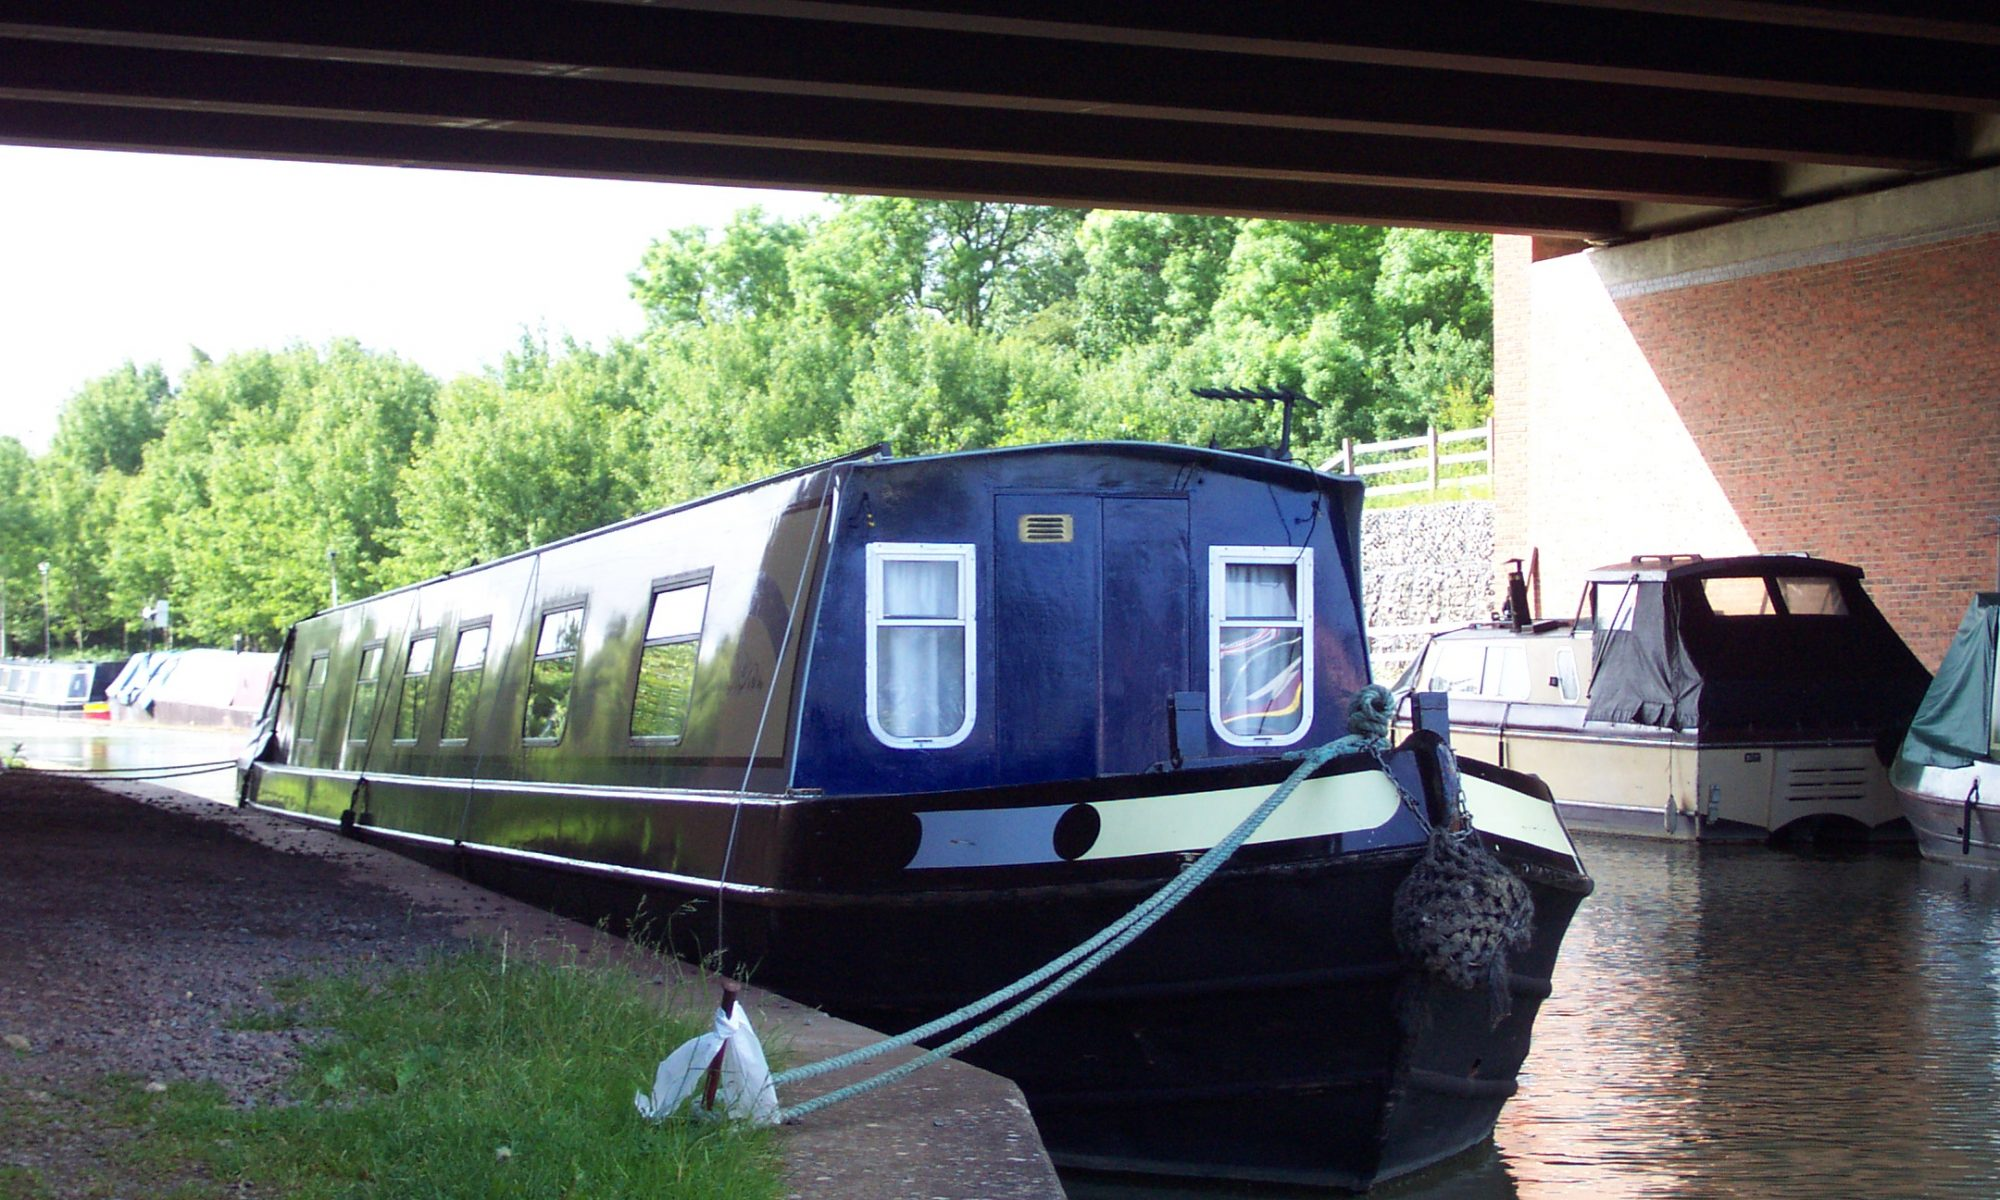 Narrowboat Pollyanna